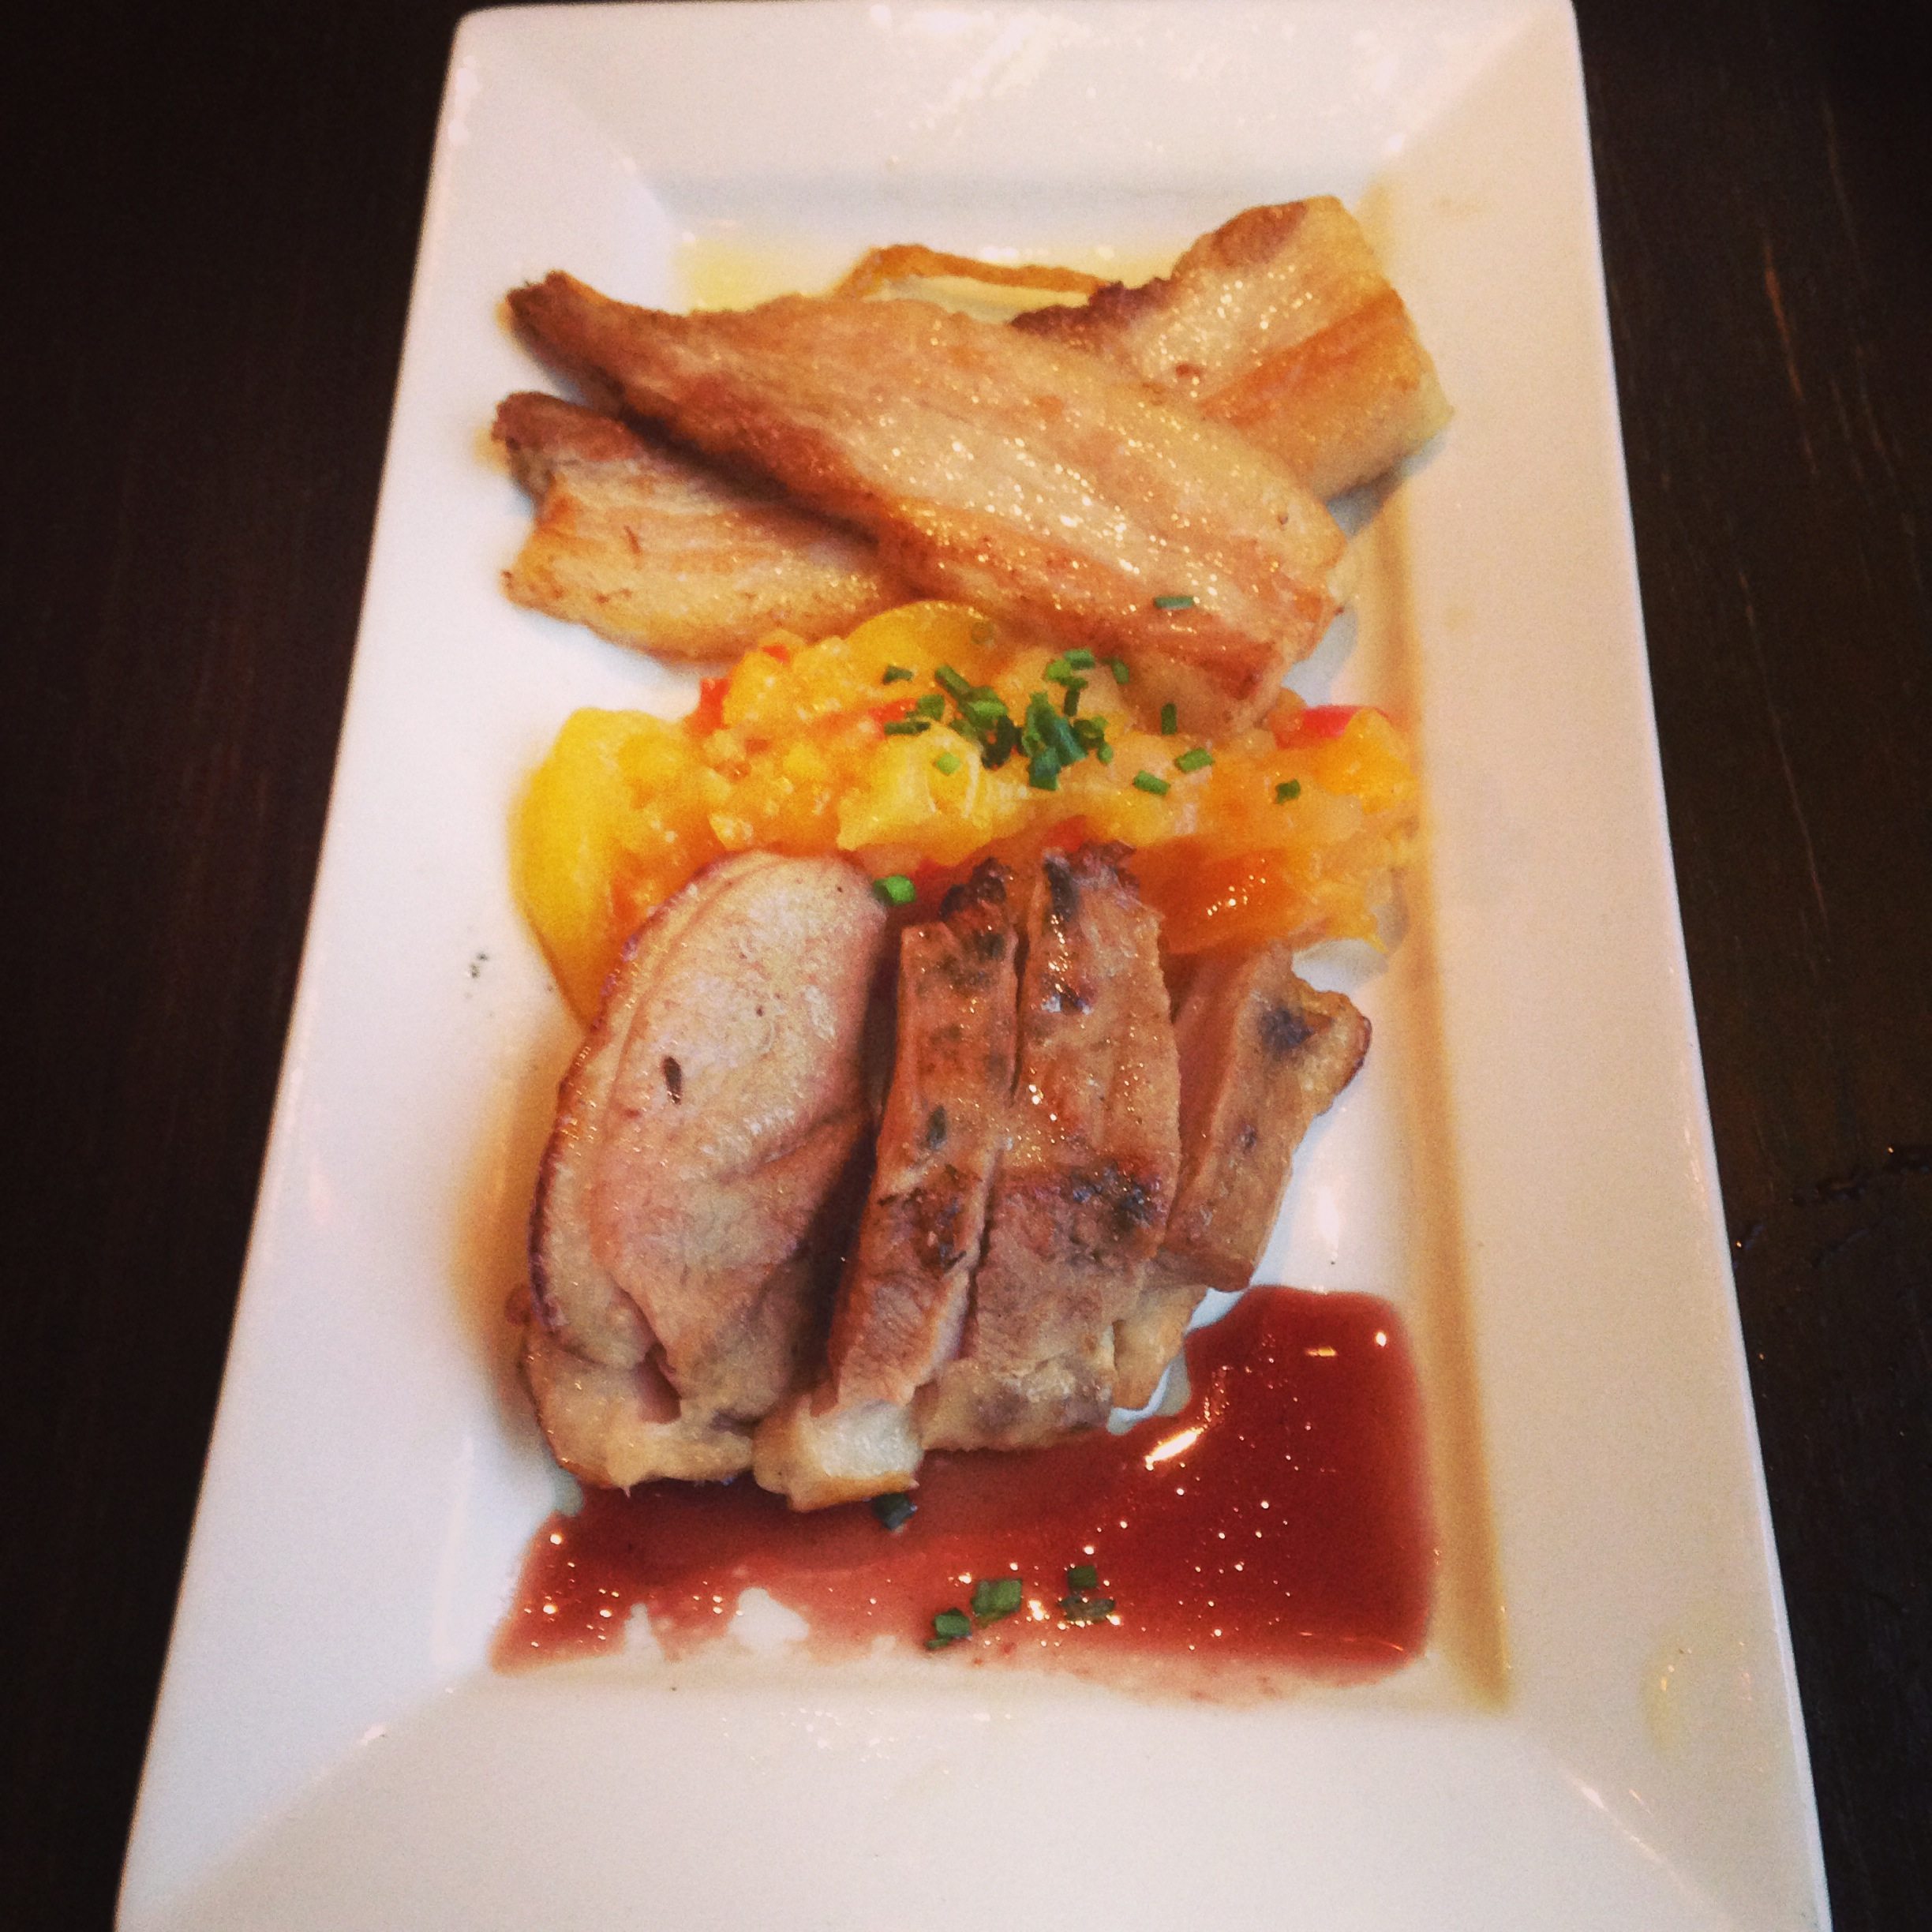 We enjoy dining family style and trying a couple of things on the menu. Our starter - HouseSmoked Duck & Pork Belly. The duck was extra amazing! I love duck!